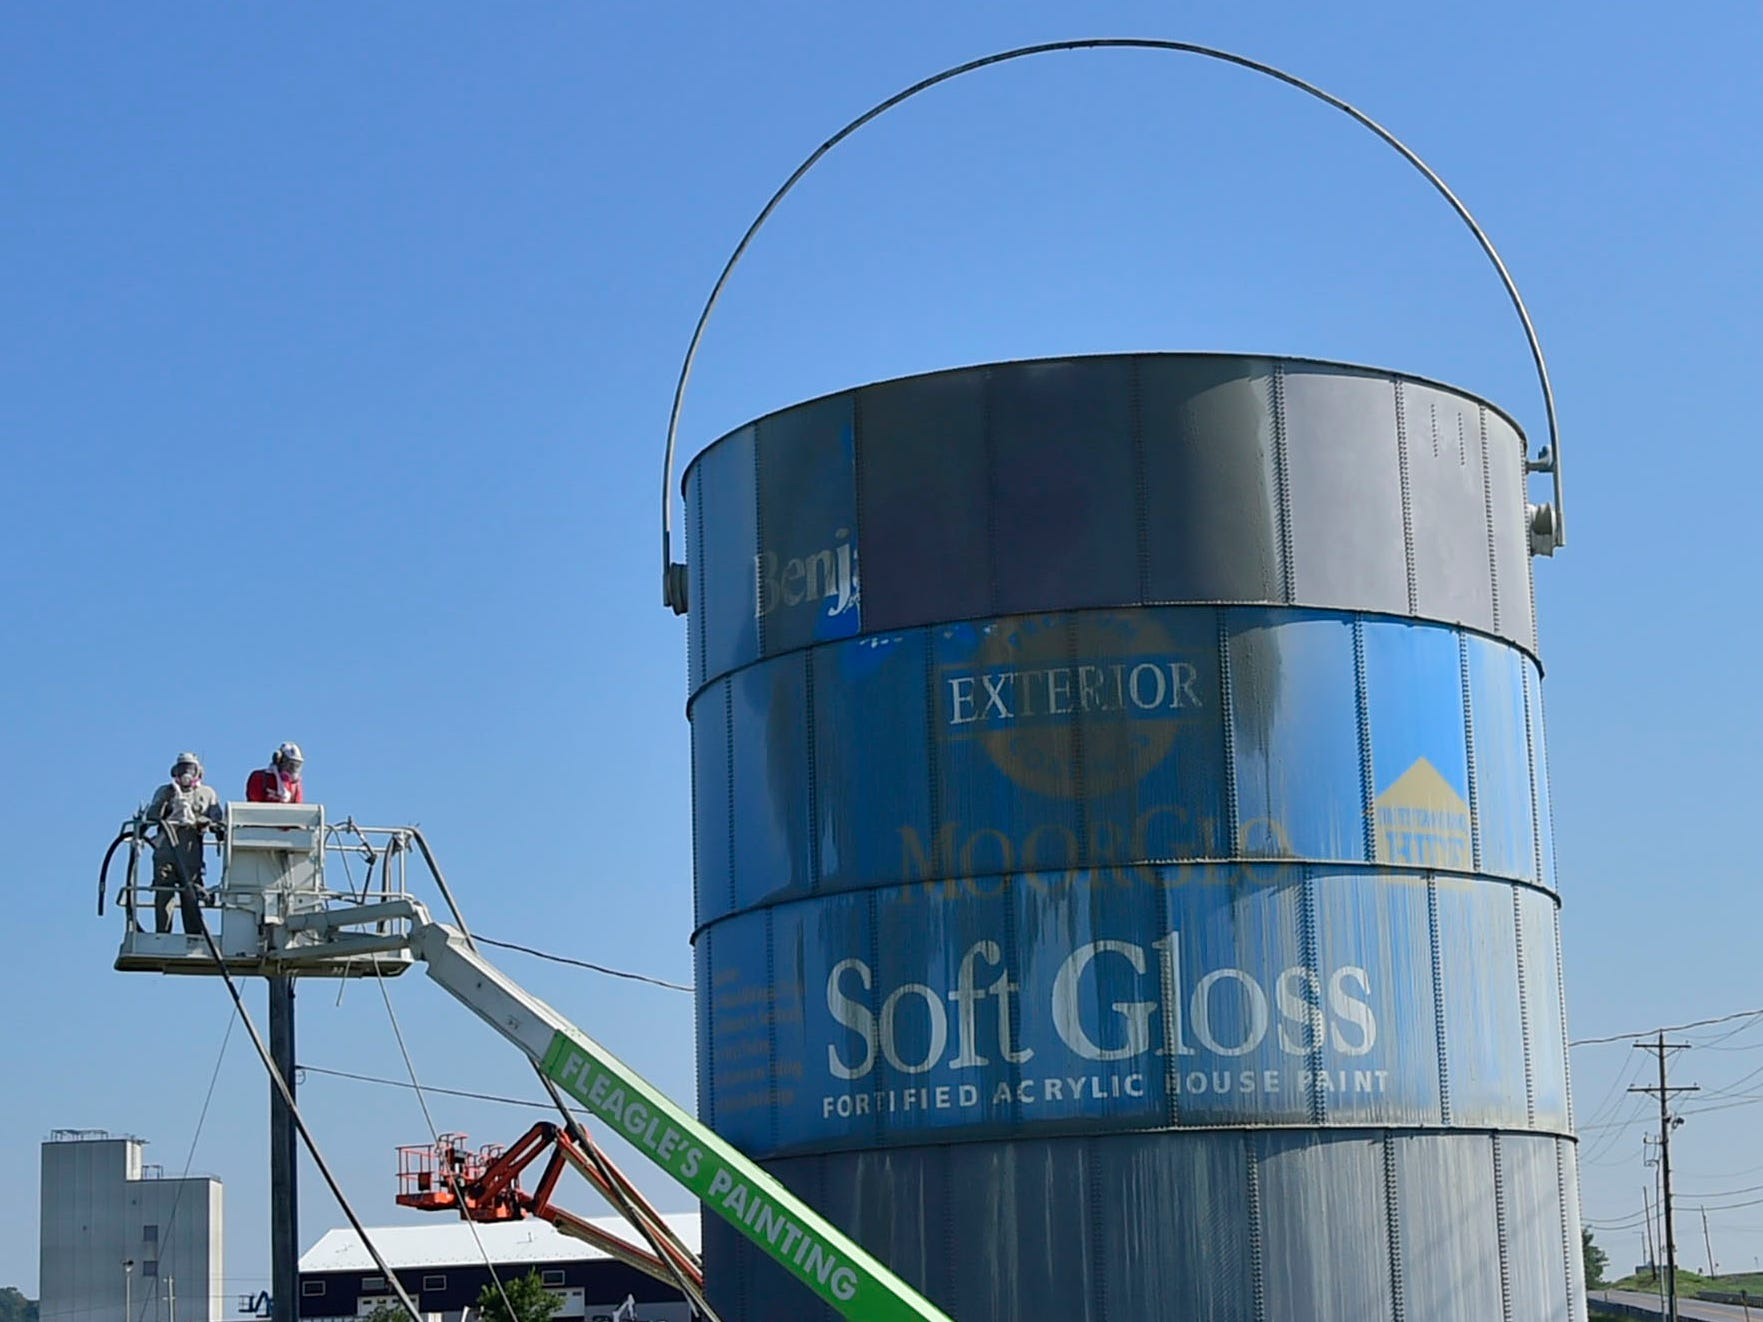 A huge 40-foot-high paint can that has become a landmark for travelers along Interstate 81 around Exit 24, Shippensburg, is getting a facelift. Fleagle's Painting, LLC, Chambersburg, is restoring the former water tank, originally installed as a business promotion in 1995, at A&A Decorative Design. The work will take about three weeks to complete at the business off Mount Rock Road.